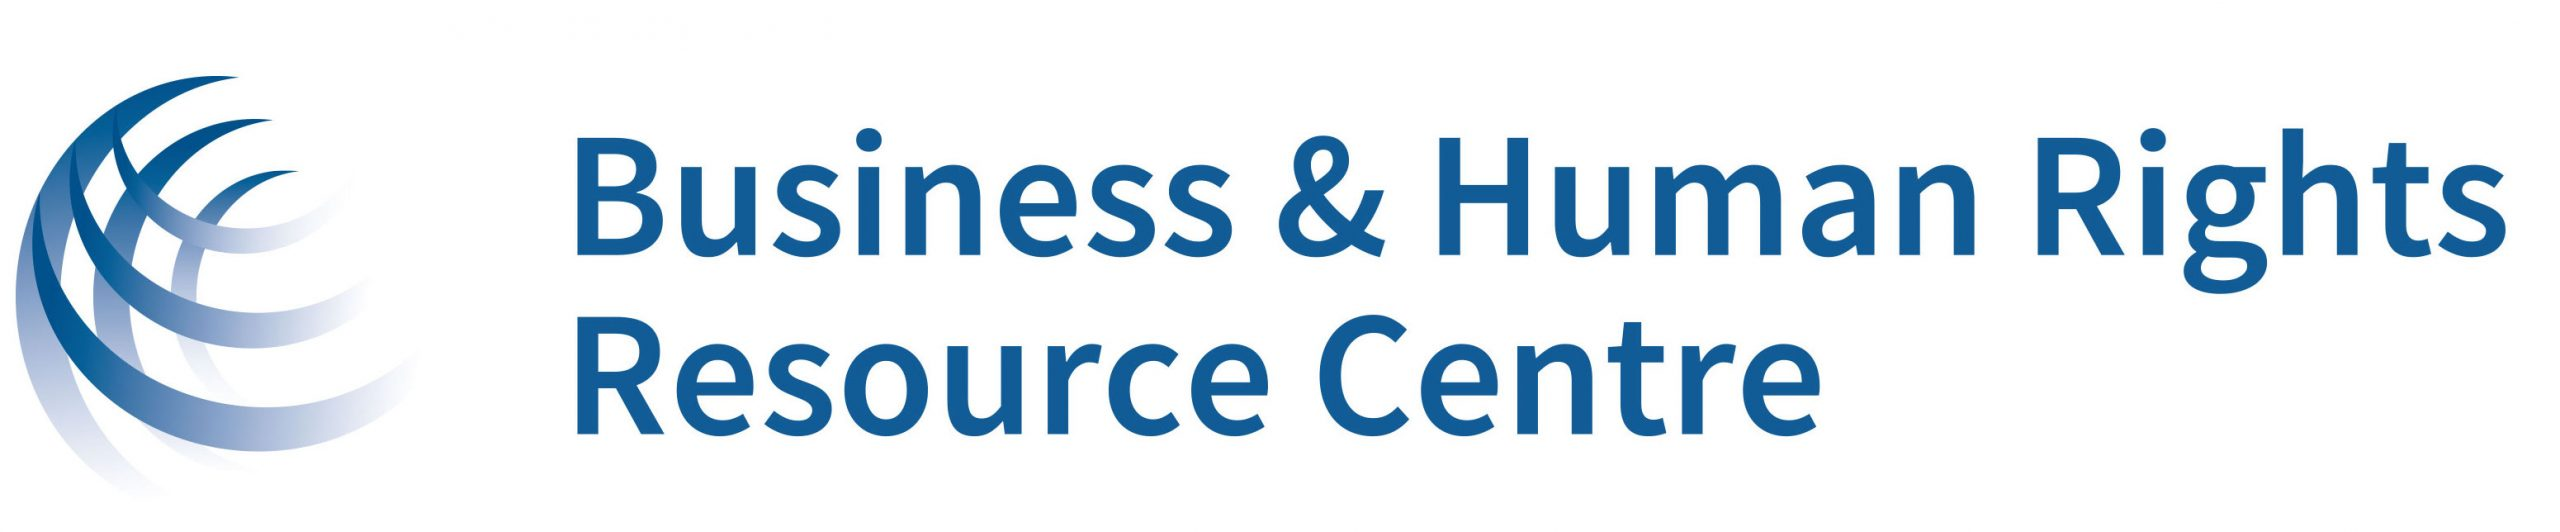 Business and Human Rights Resource Centre